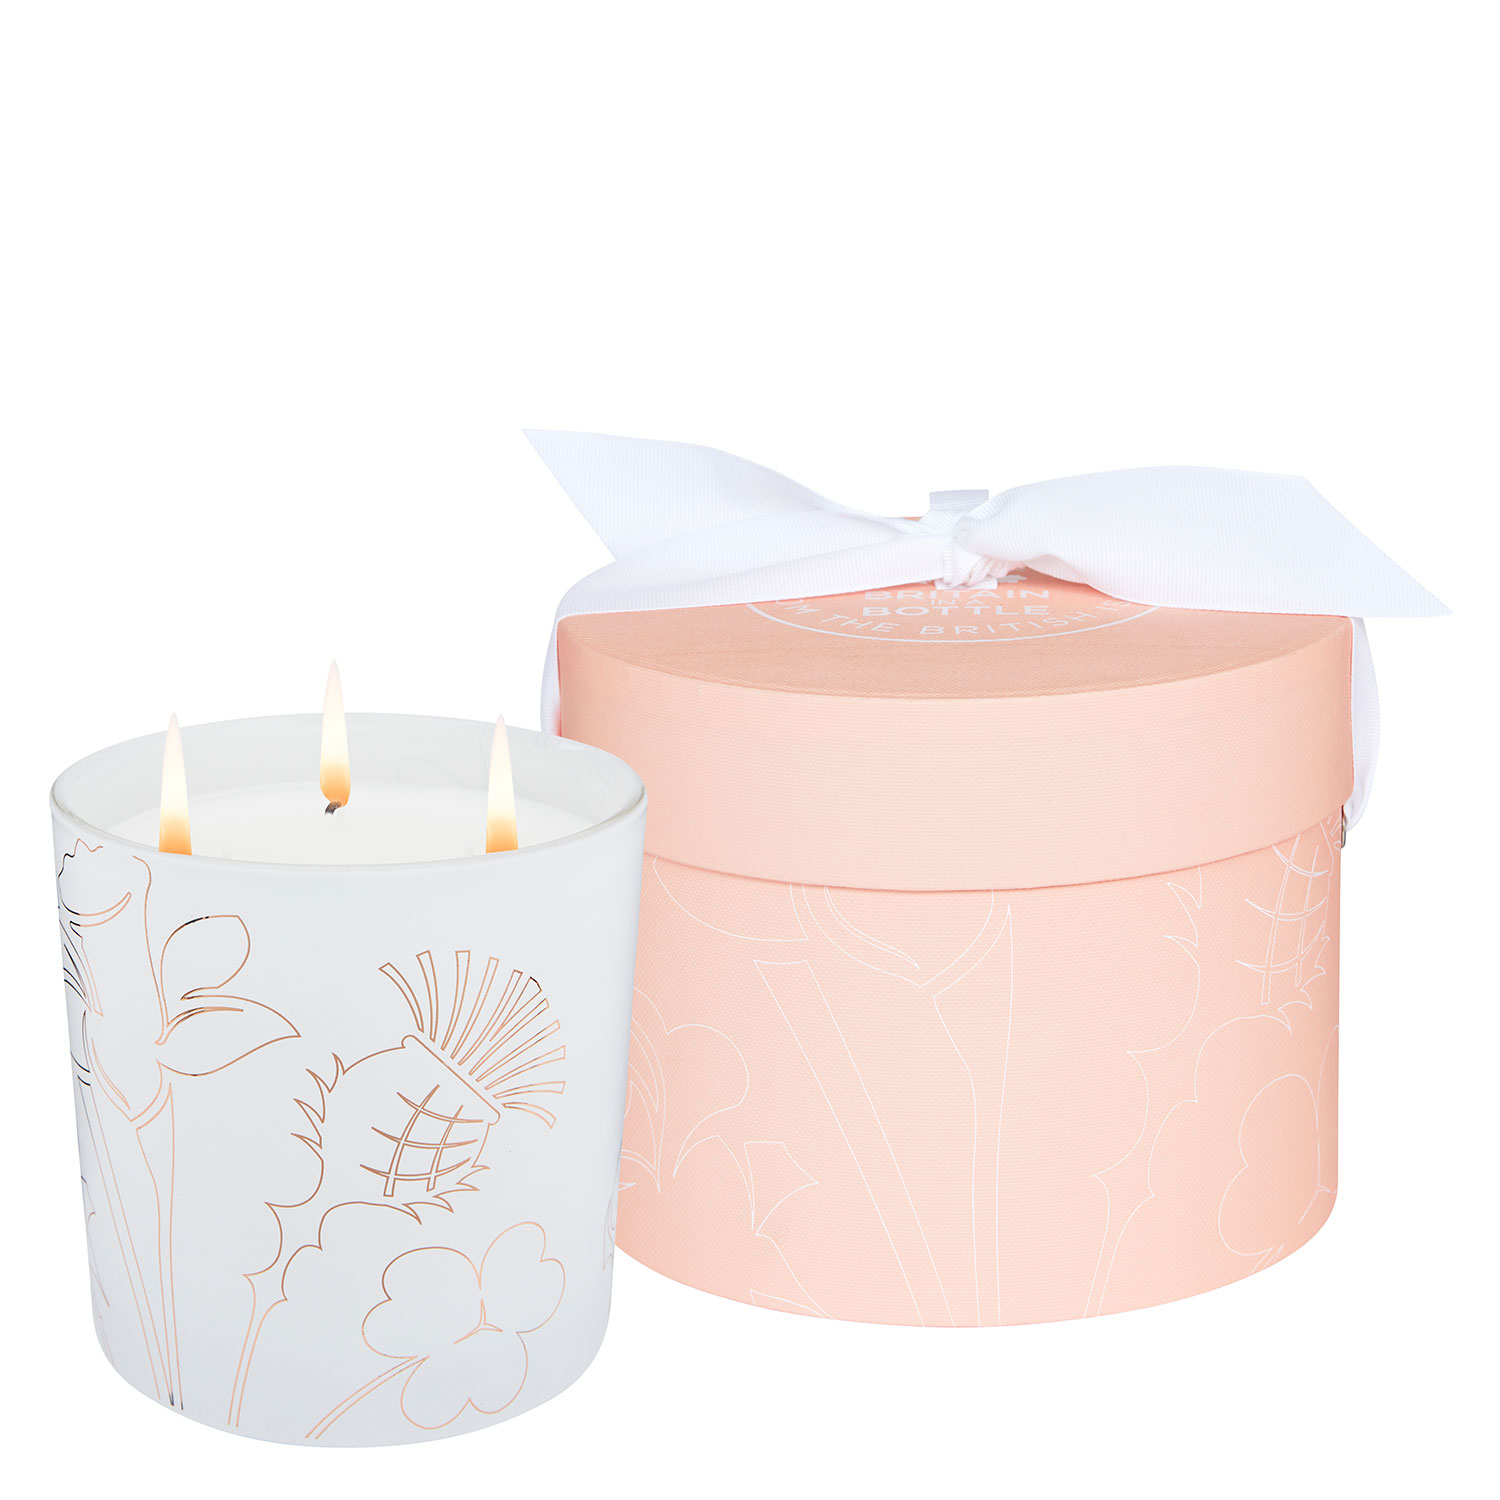 Noble Isle - The Crème de Rhubarb 3 Wick Candle